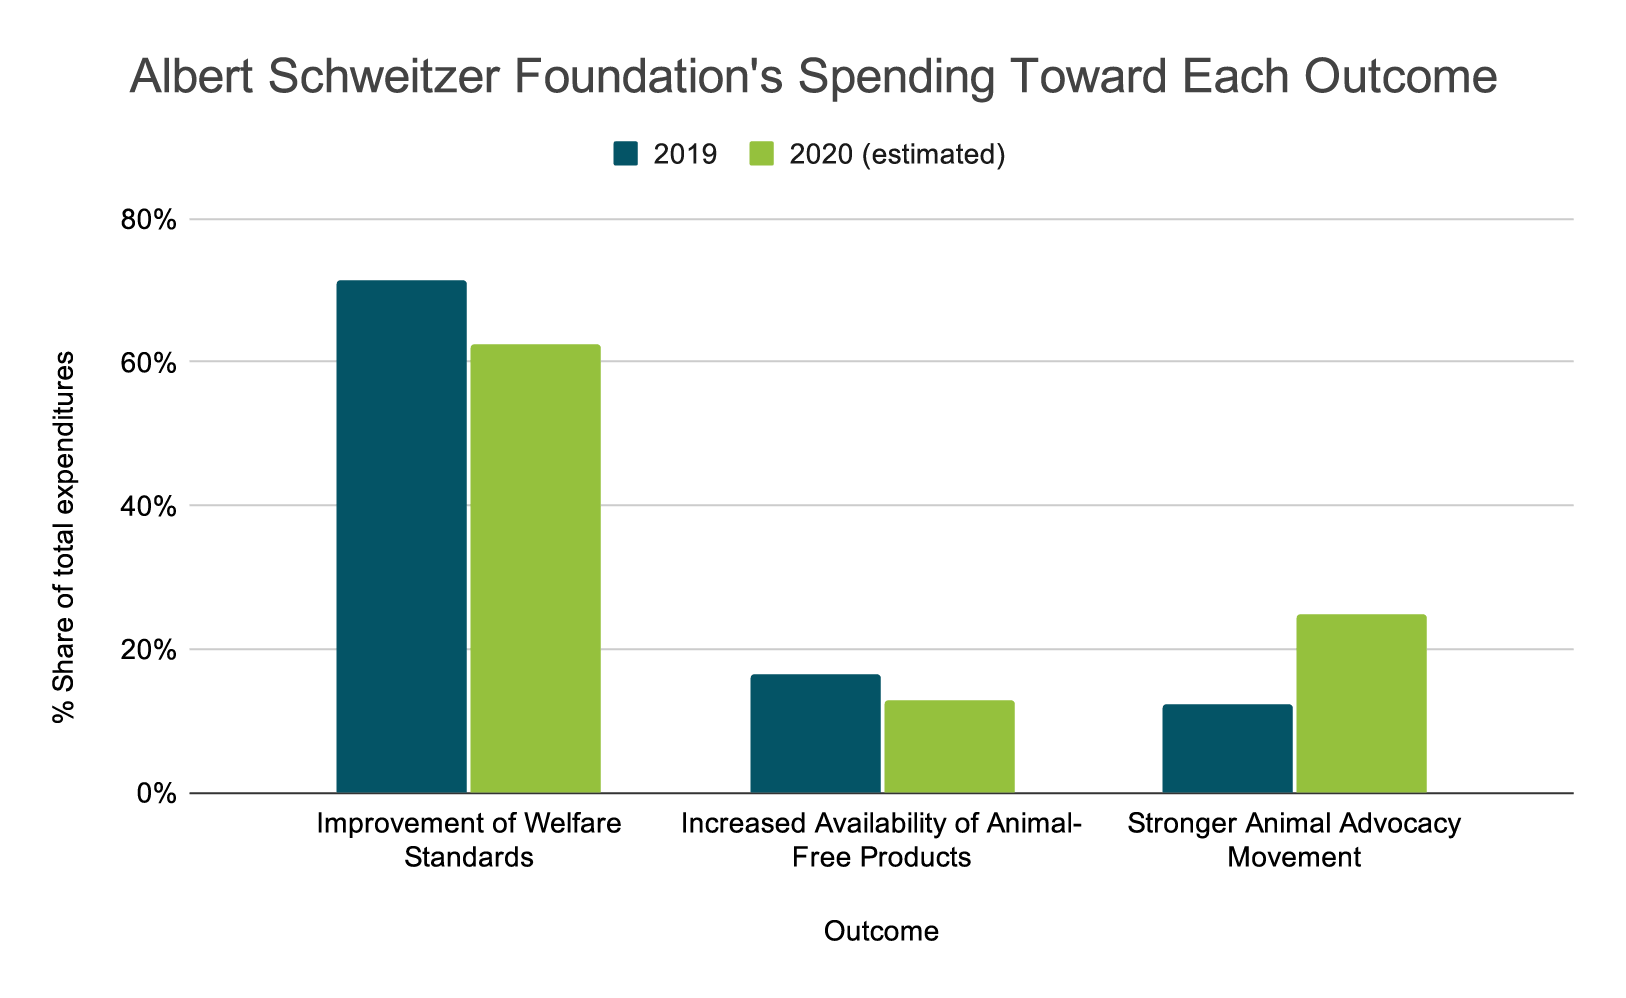 Albert Schweitzer Foundation Spending Toward Each Outcome